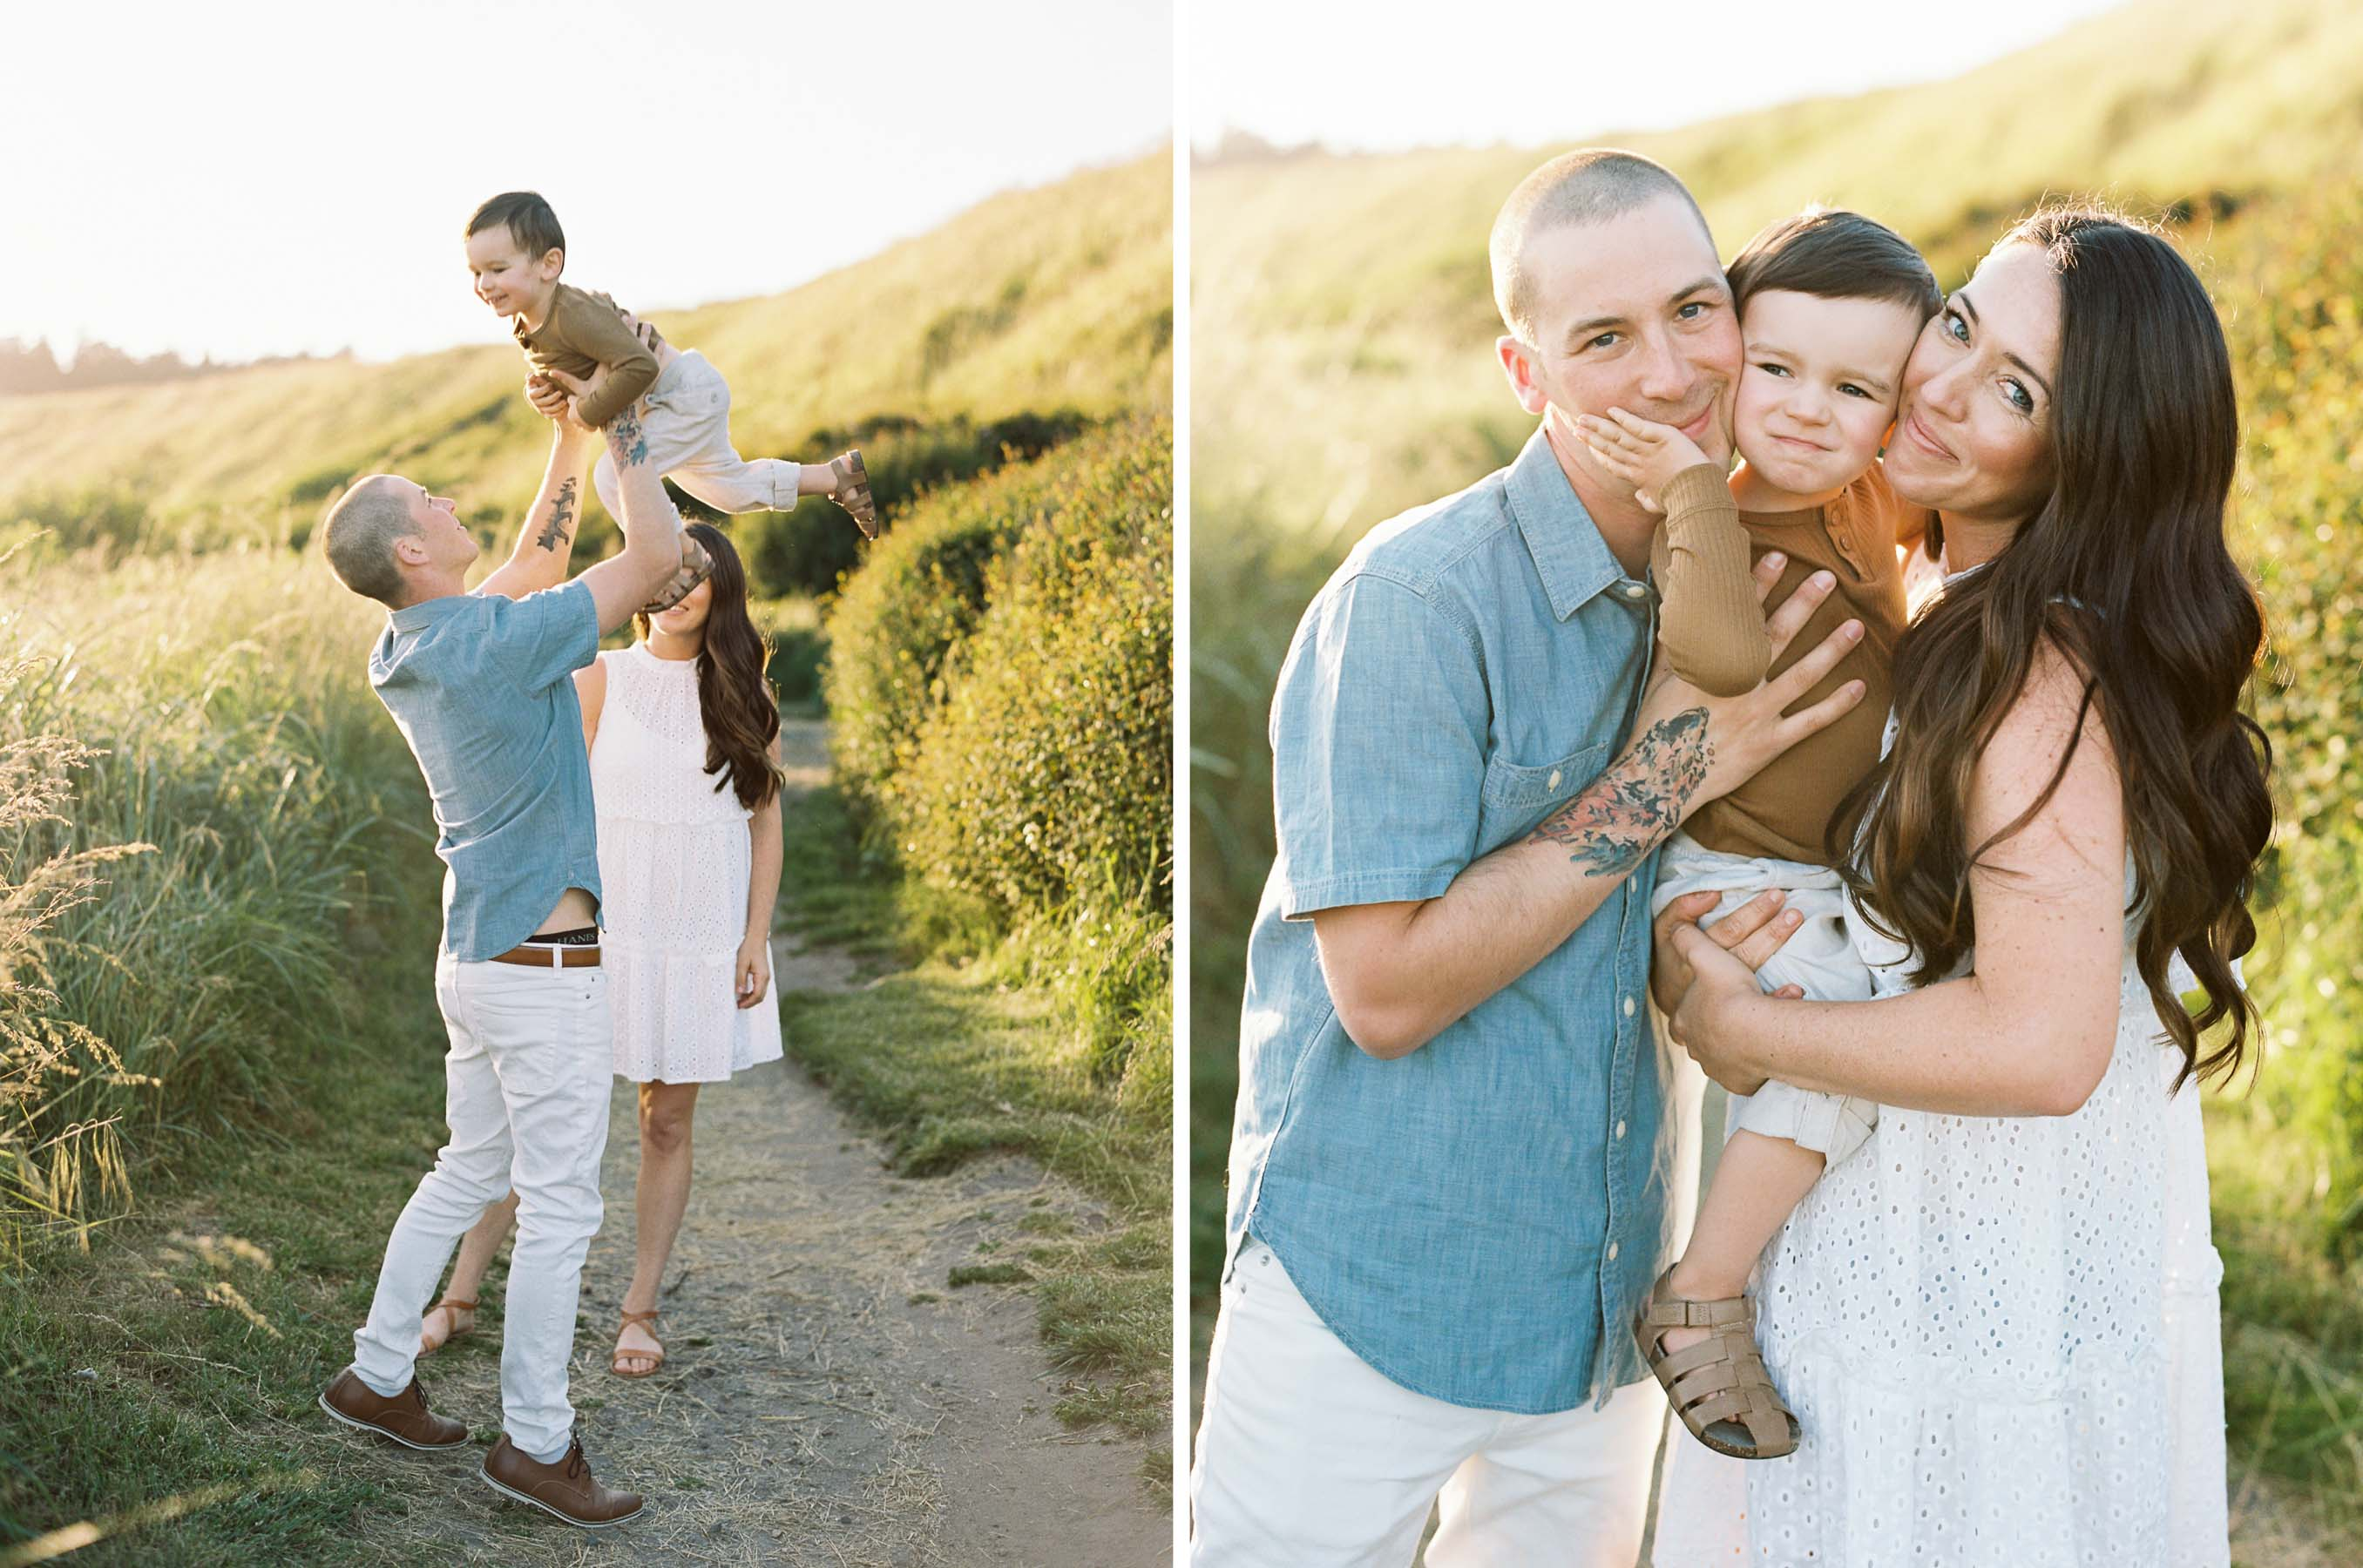 Fine art family photography captured on film by Anna Peters